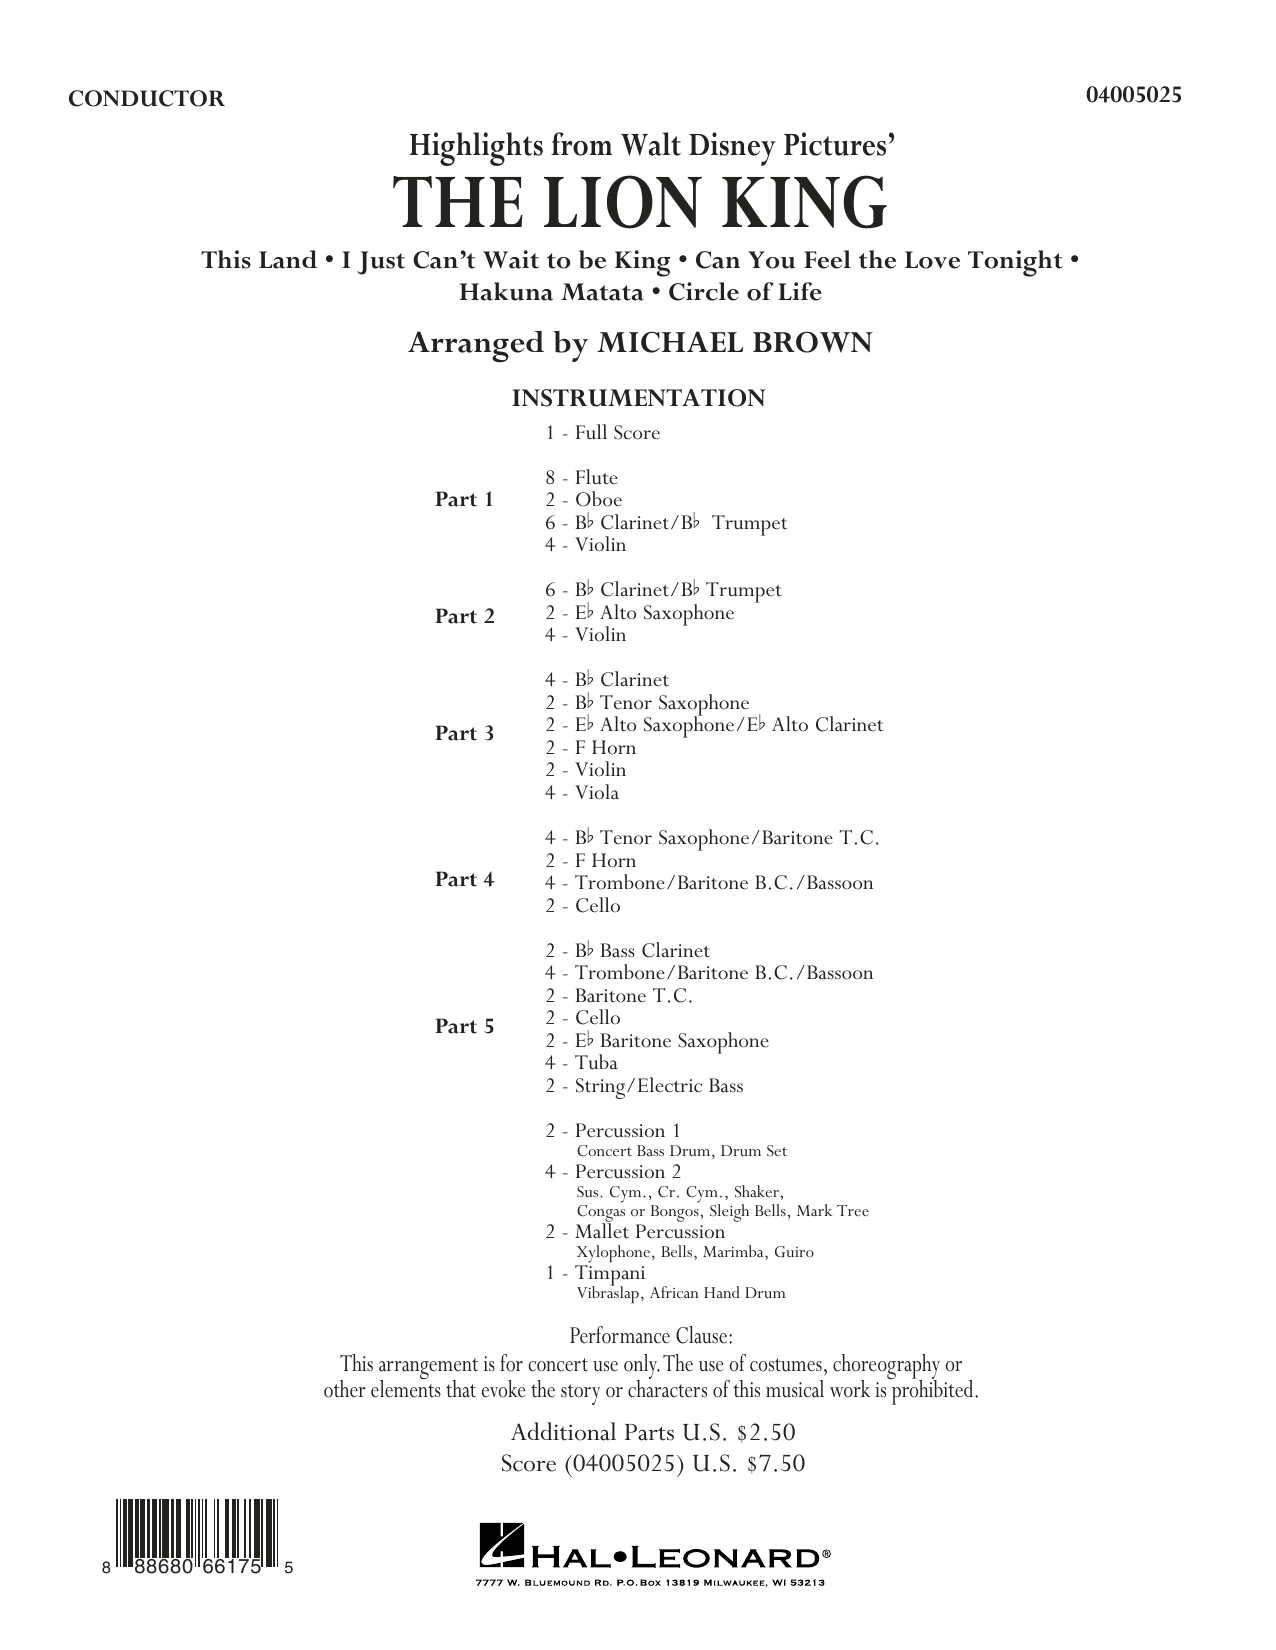 Highlights from The Lion King - Conductor Score (Full Score) Sheet Music